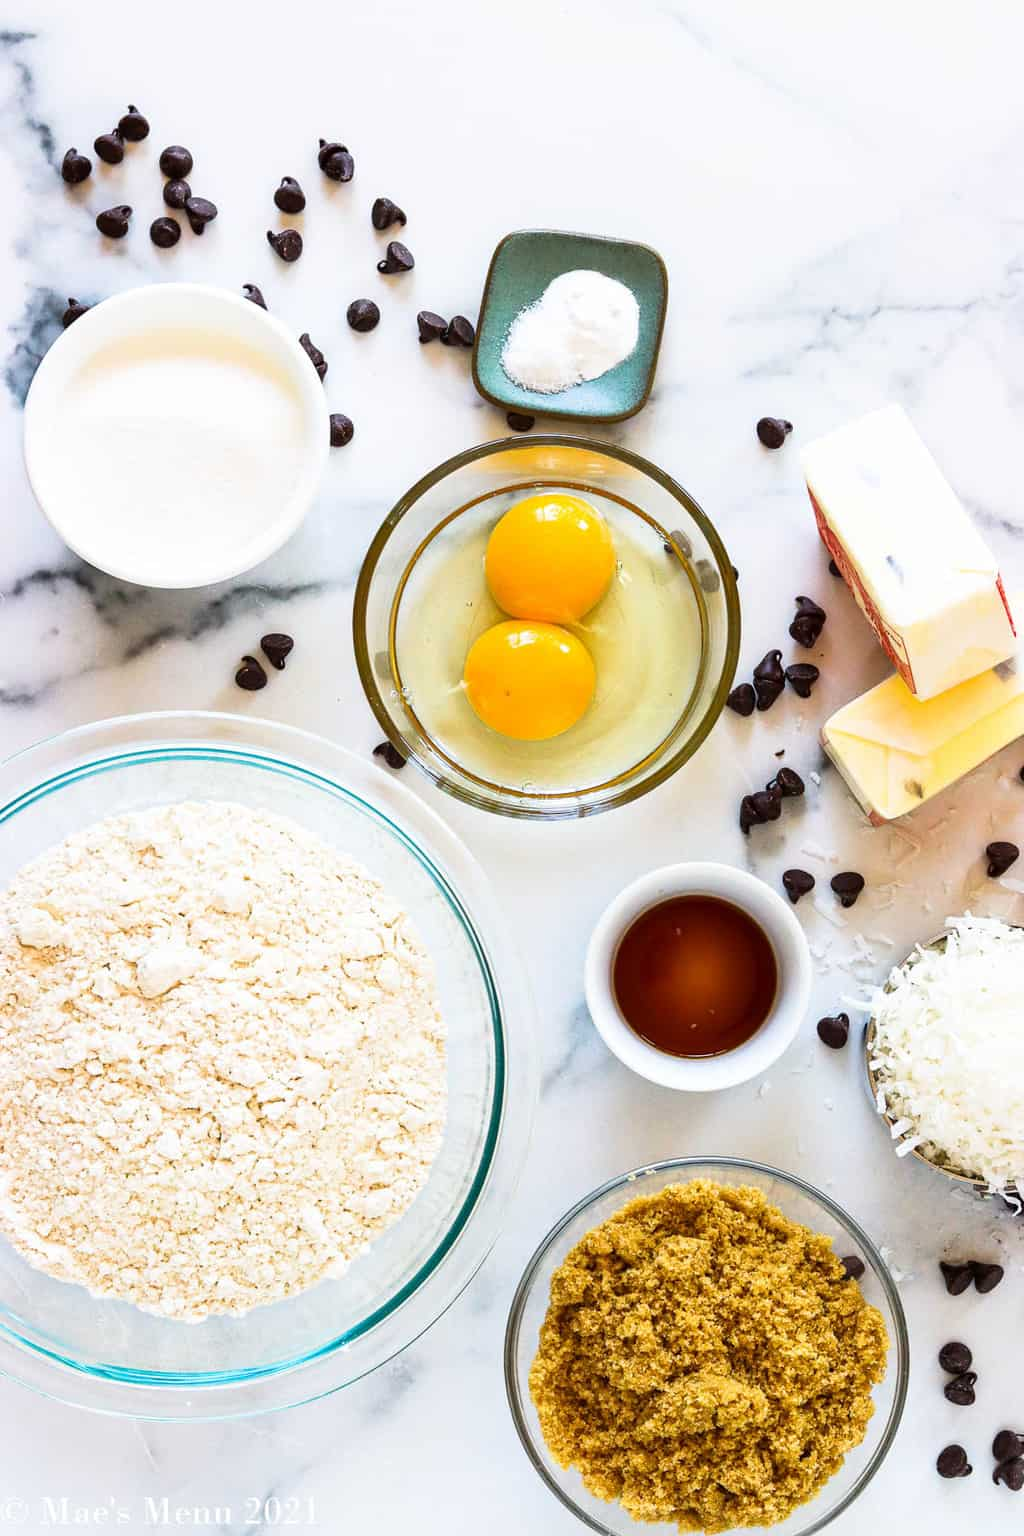 All o the ingredients for chocolate chip coconut cookies: flour, sugar, eggs, baking soda and salt, butter, vanilla extract, flaked coconut, and brown sugar